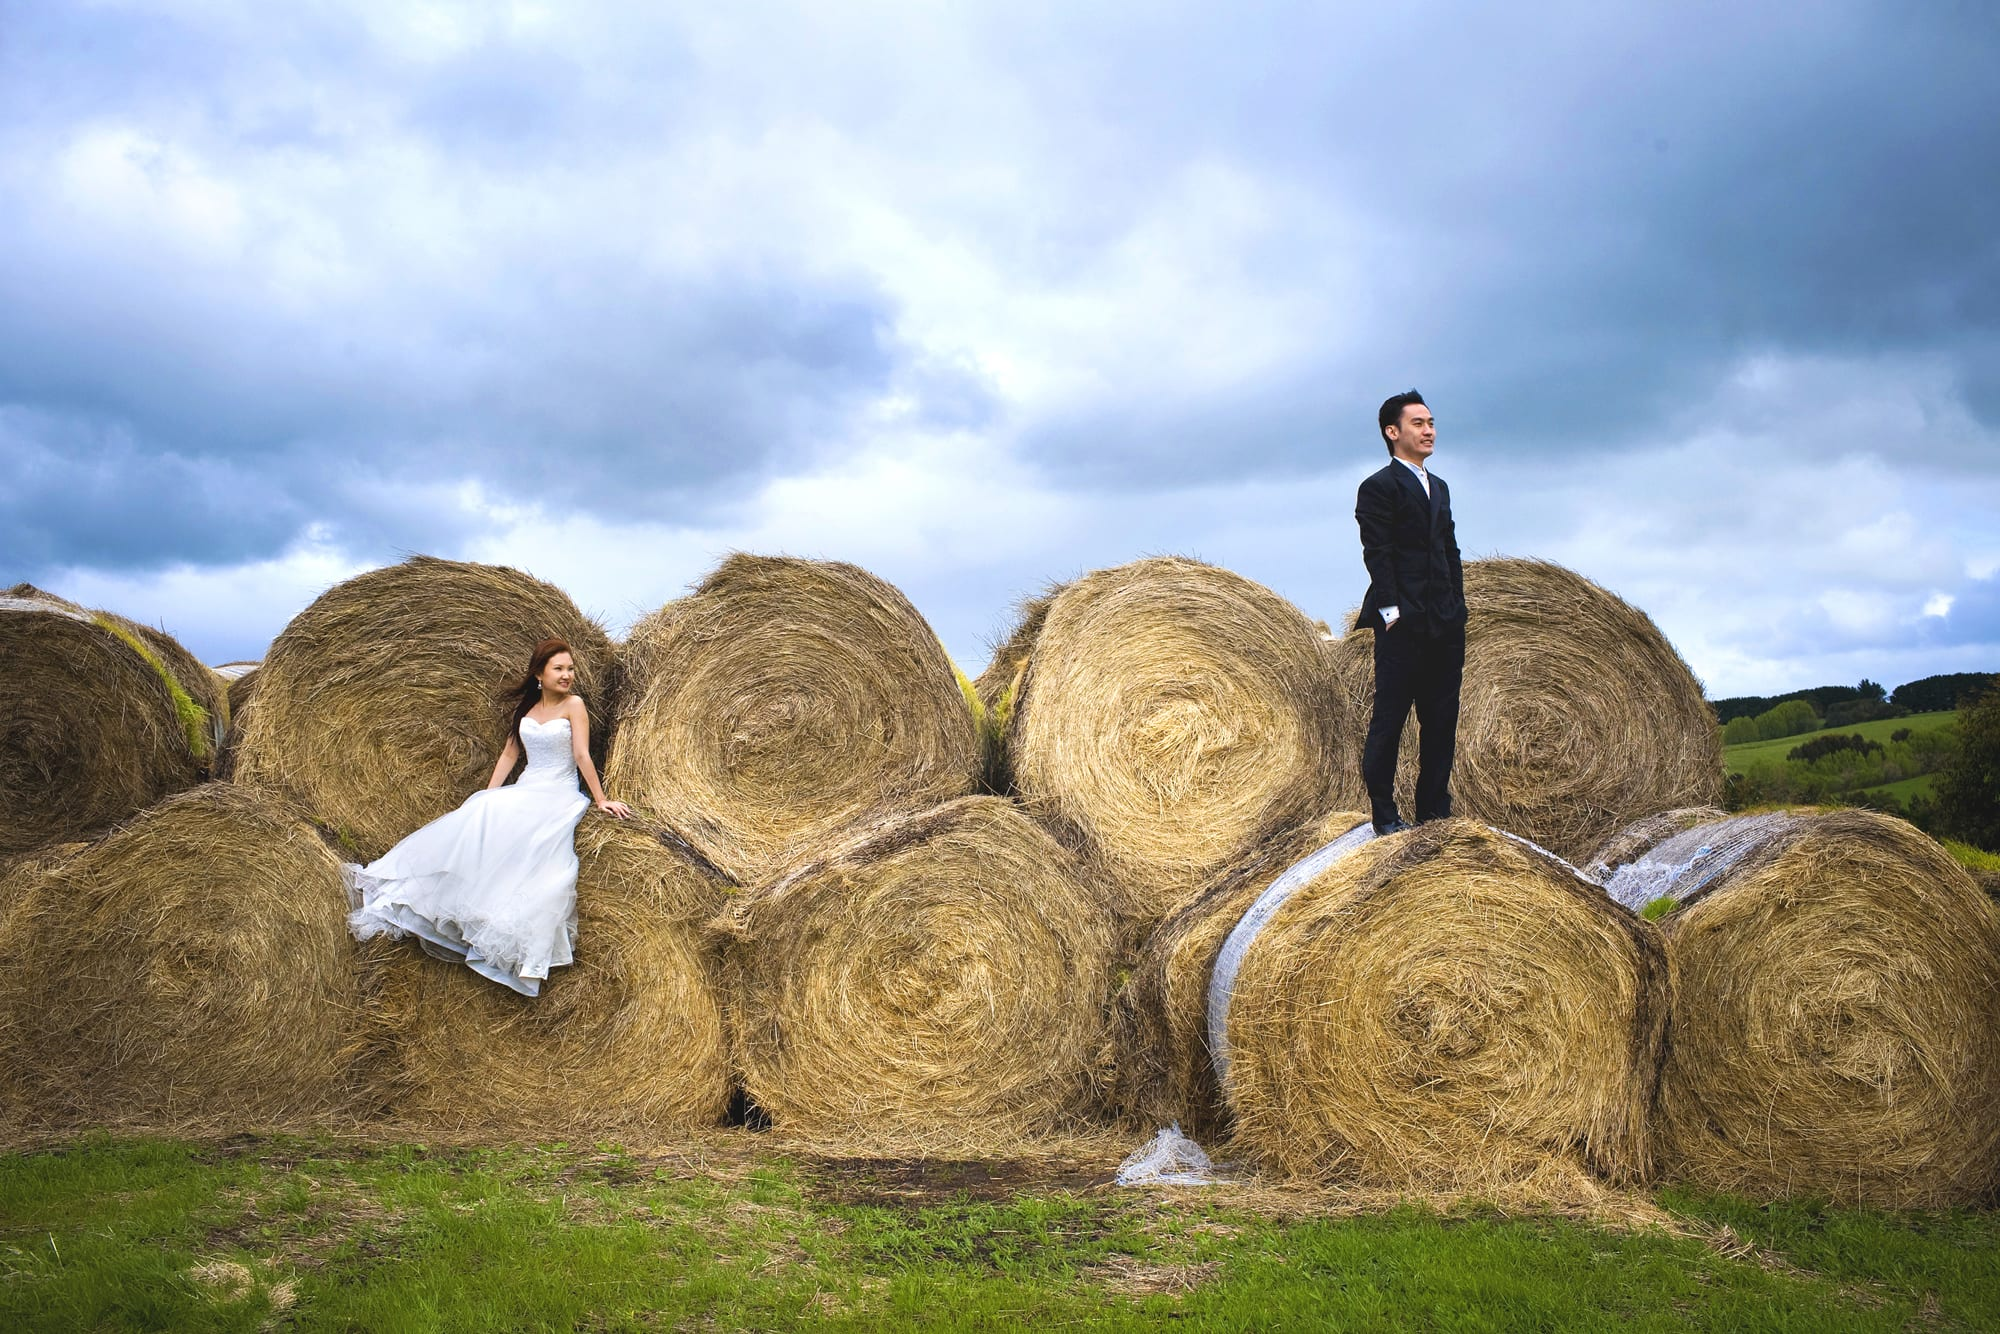 Australian Wedding Gifts For Overseas: Most Popular Destinations For Your Overseas Pre-wedding